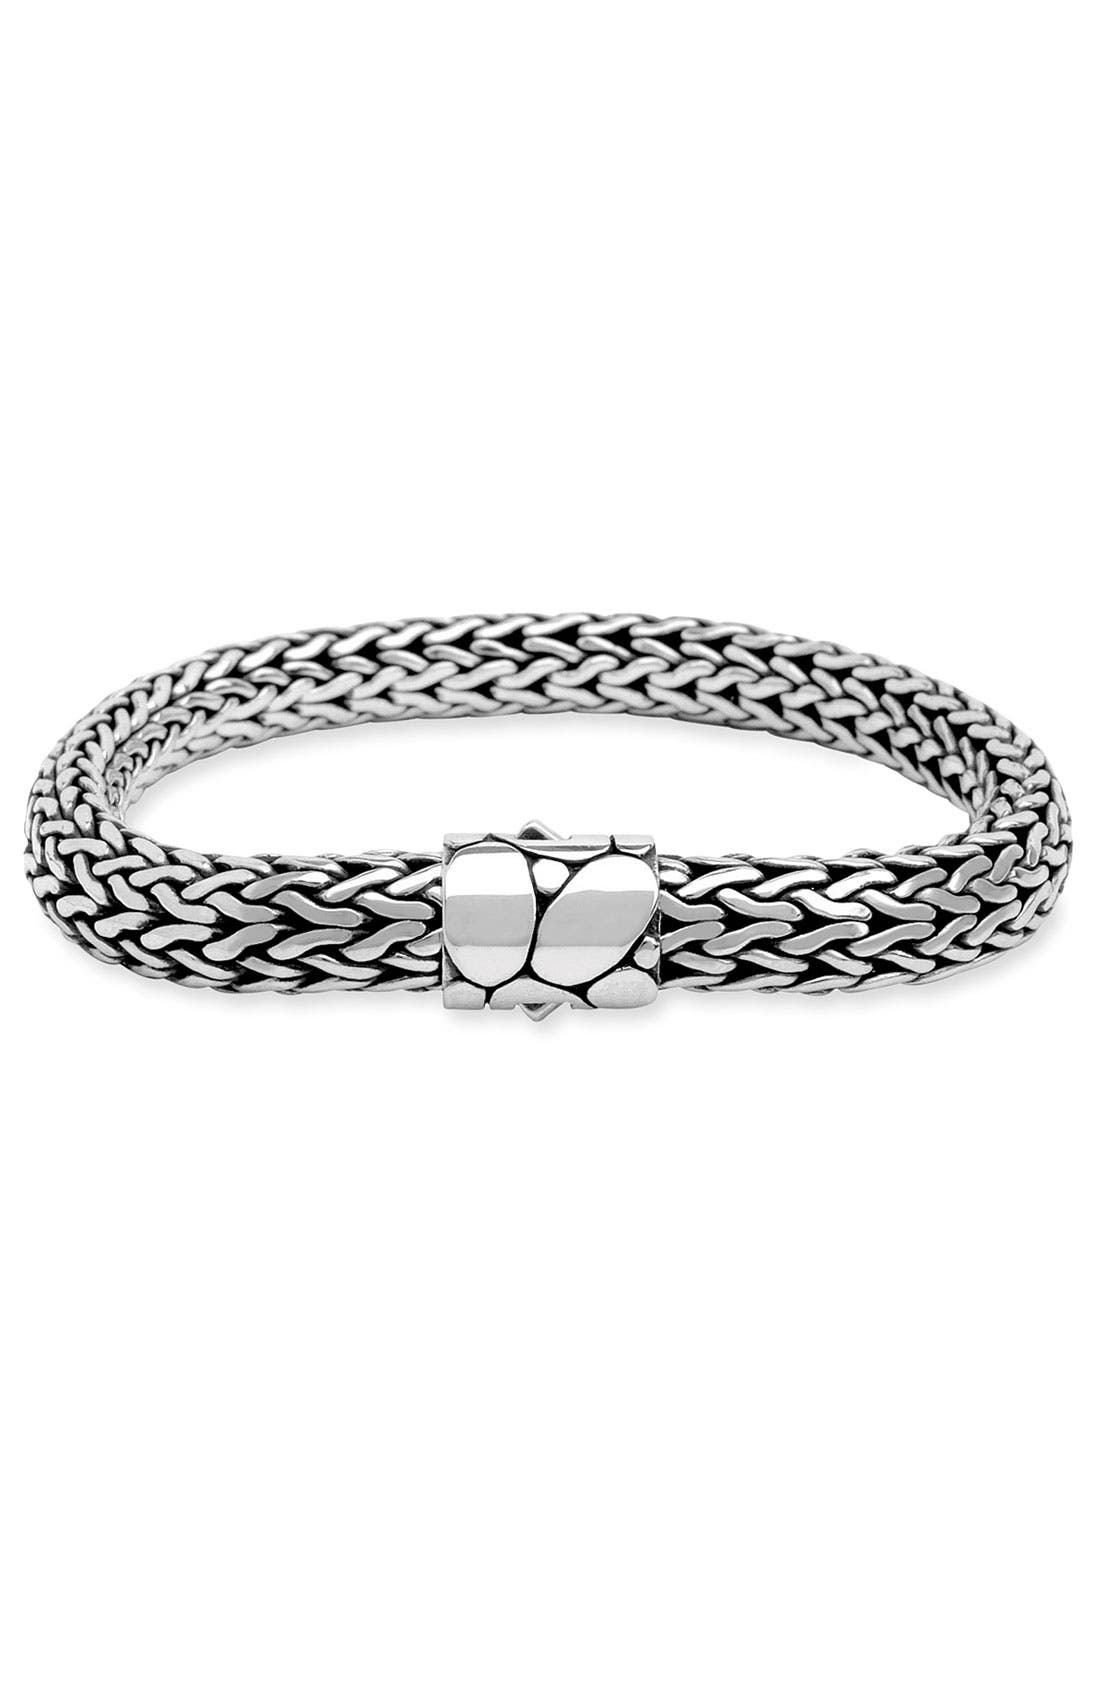 Alternate Image 1 Selected - John Hardy 'Kali' Sterling Silver Bracelet